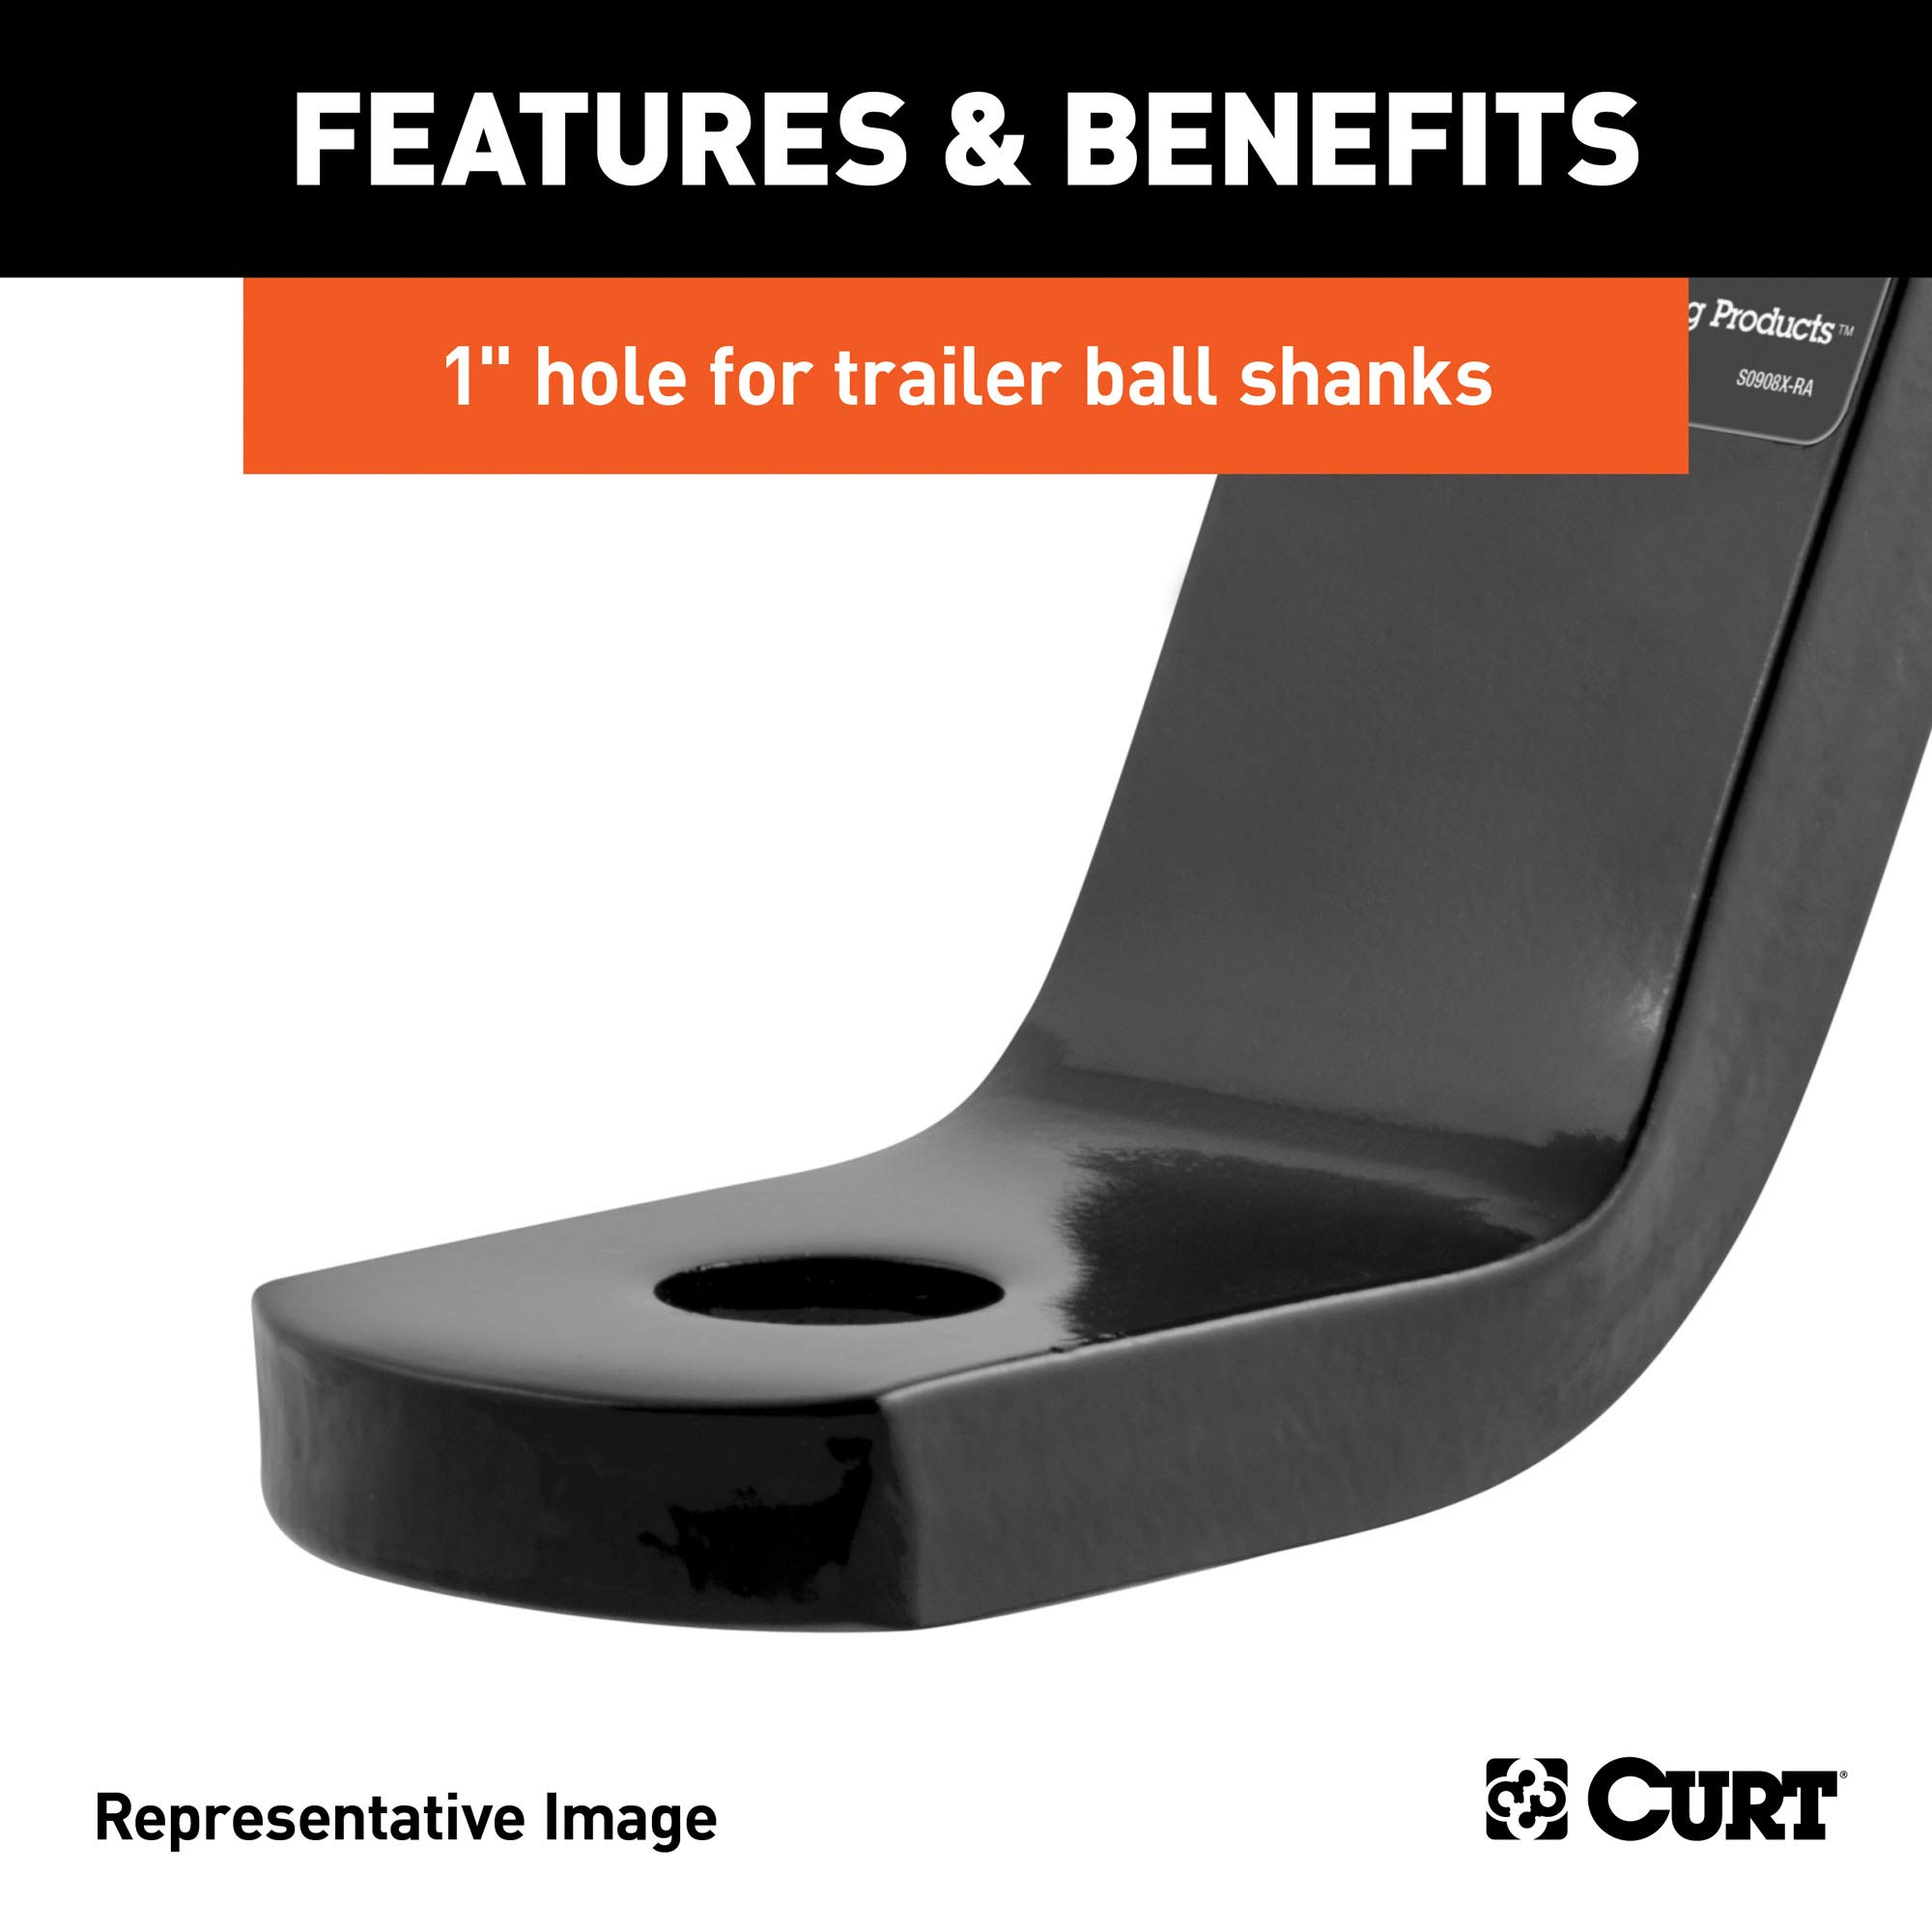 CURT 45260 Class 3 Trailer Hitch Ball Mount, Fits 2-Inch Receiver, 7,500 lbs, 1-Inch Hole, 2-In Drop, 3/4-Inch Rise